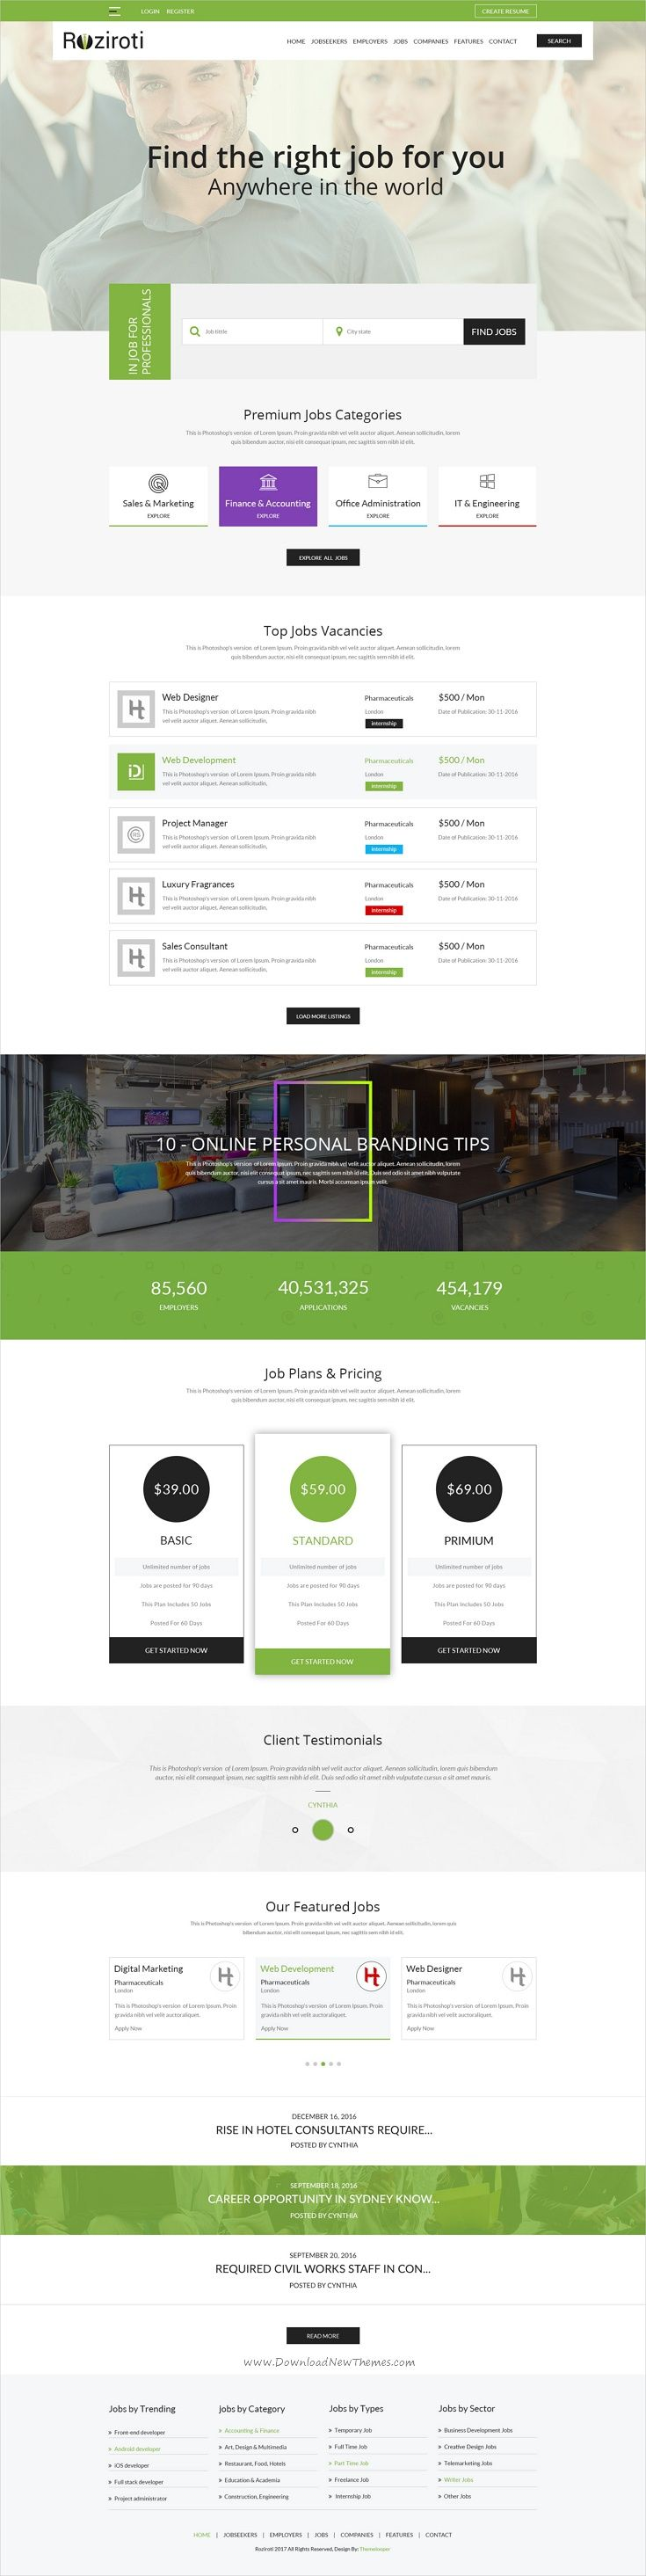 RoziRoti is professional #PSD template for #job board #portal websites download now➩  https://themeforest.net/item/rozi-roti-job-board-psd-template/19278986?ref=Datasata